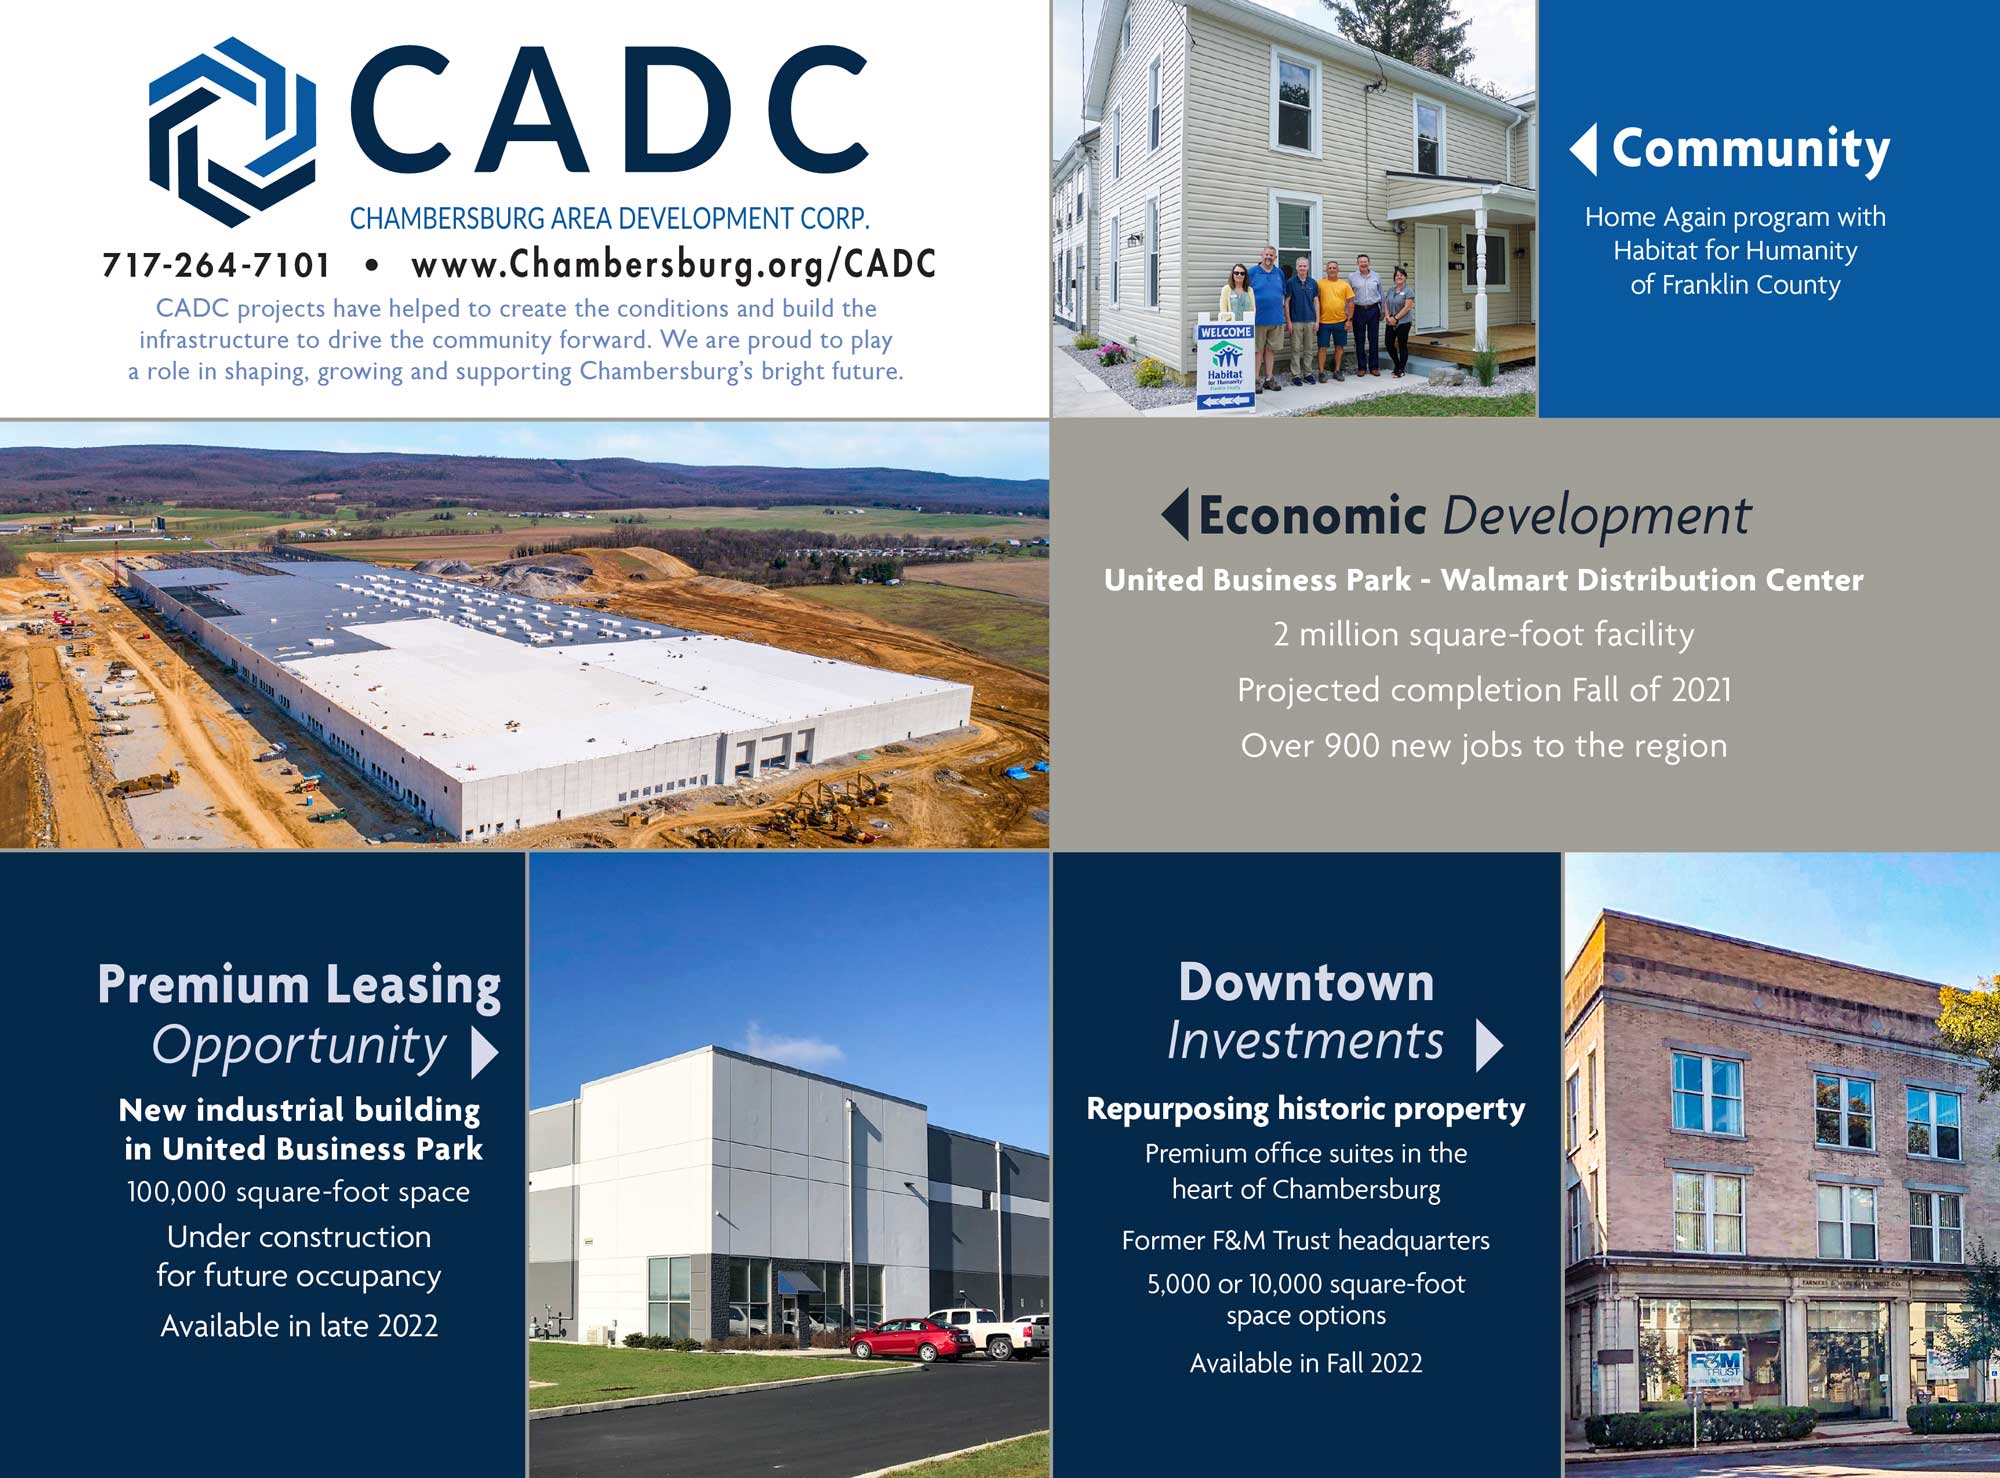 """<center>Chambersburg Area Development Corp.   <b><a href=""""https://chambersburg.org/CADC"""" target=""""_blank"""" rel=""""noopener noreferrer"""">CLICK HERE to view the website</a></b></center>"""